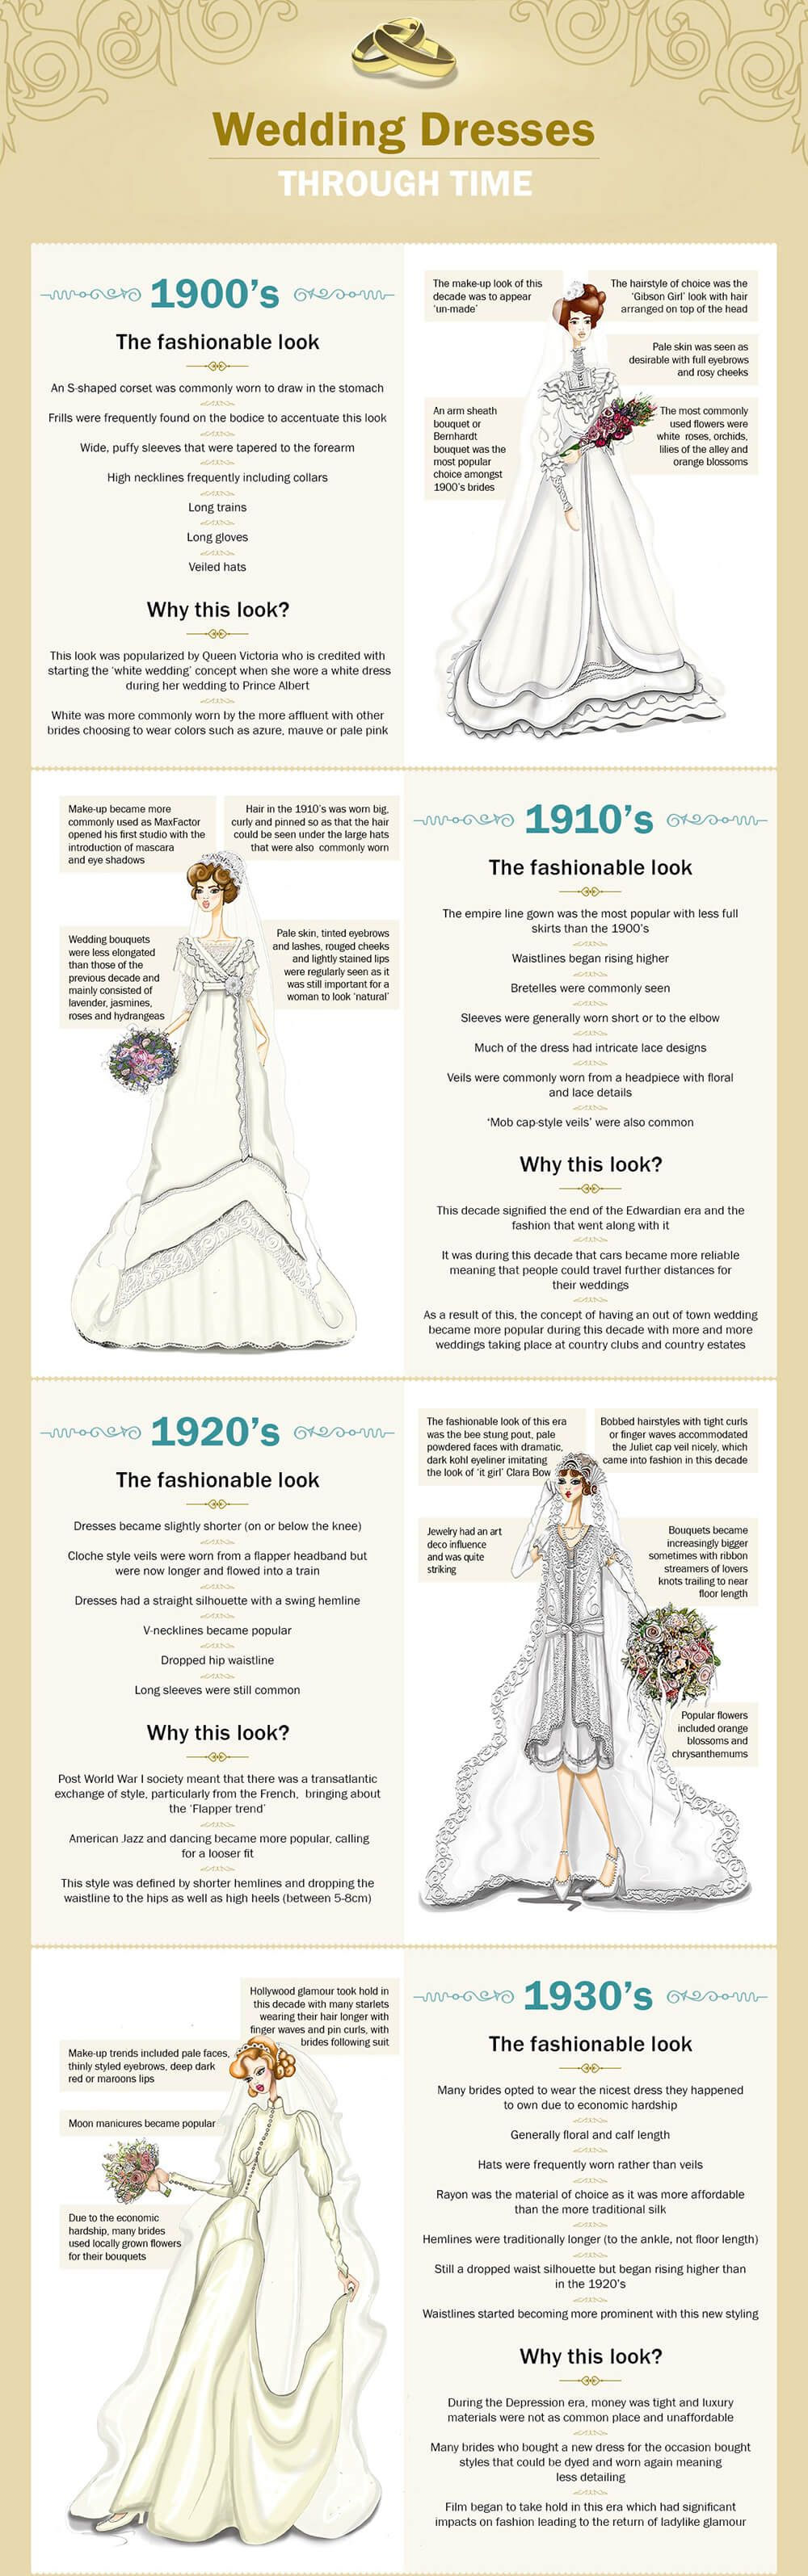 Wedding Dresses Through Time By Fairmont Hotels Resorts Via Tipsographic More Tips At